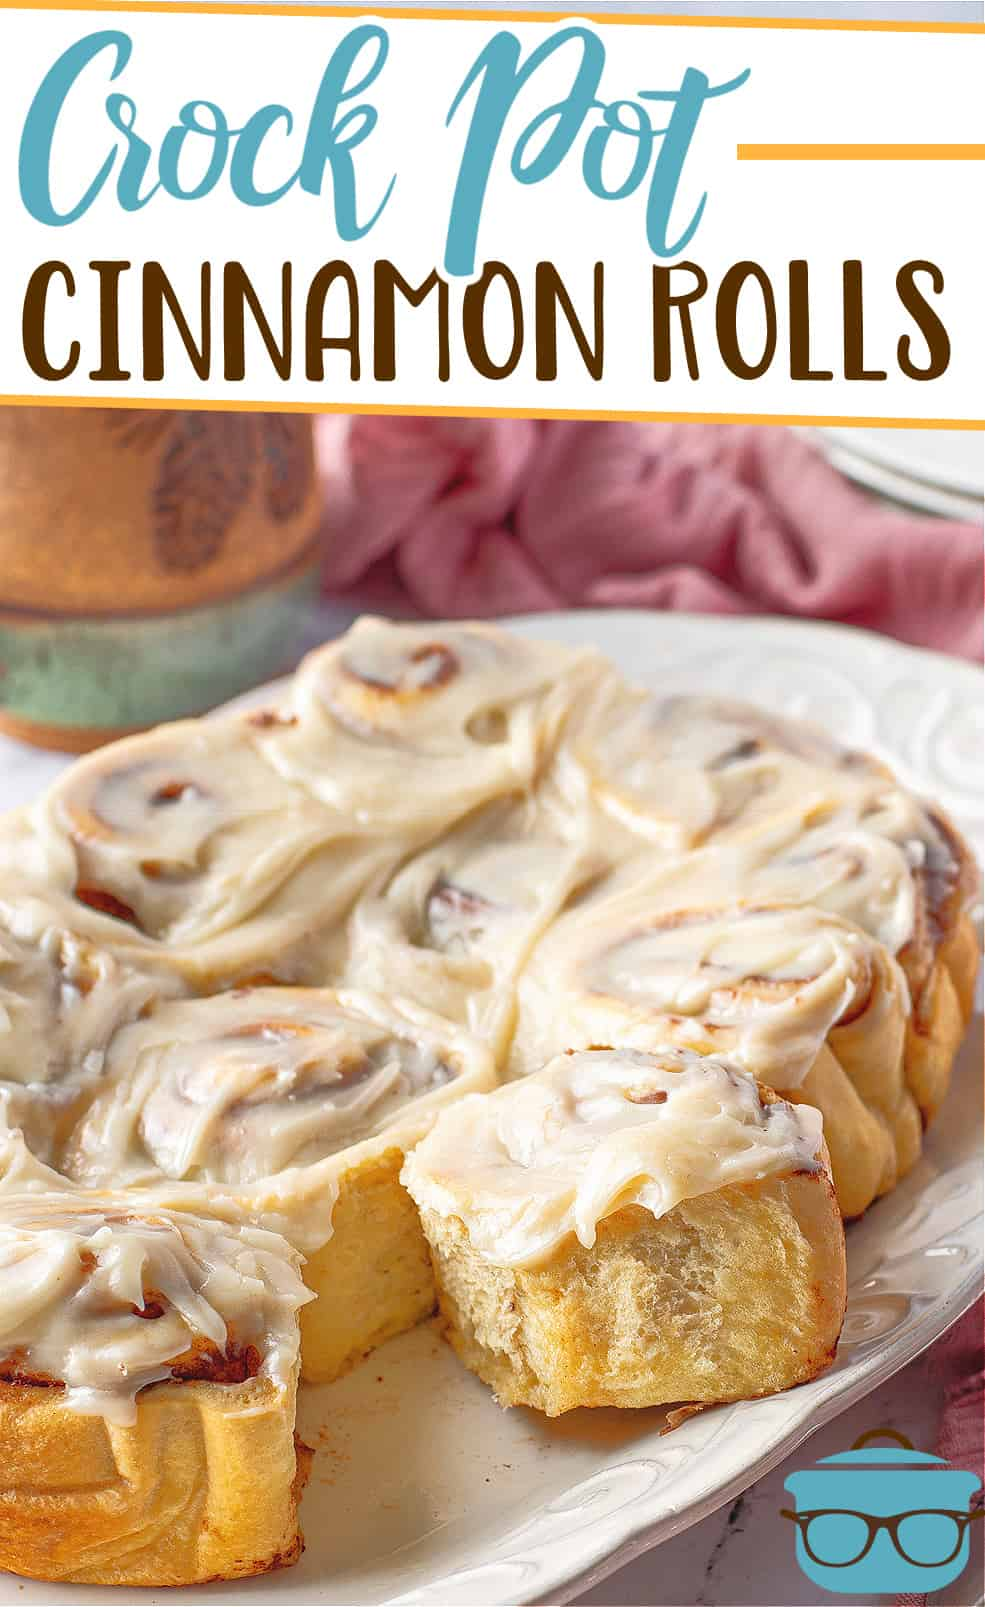 Homemade Crock Pot Cinnamon Rolls with Maple Cream Cheese Icing recipe from the Country Cook, shown on a large oval, white platter with a cup of coffee in the background